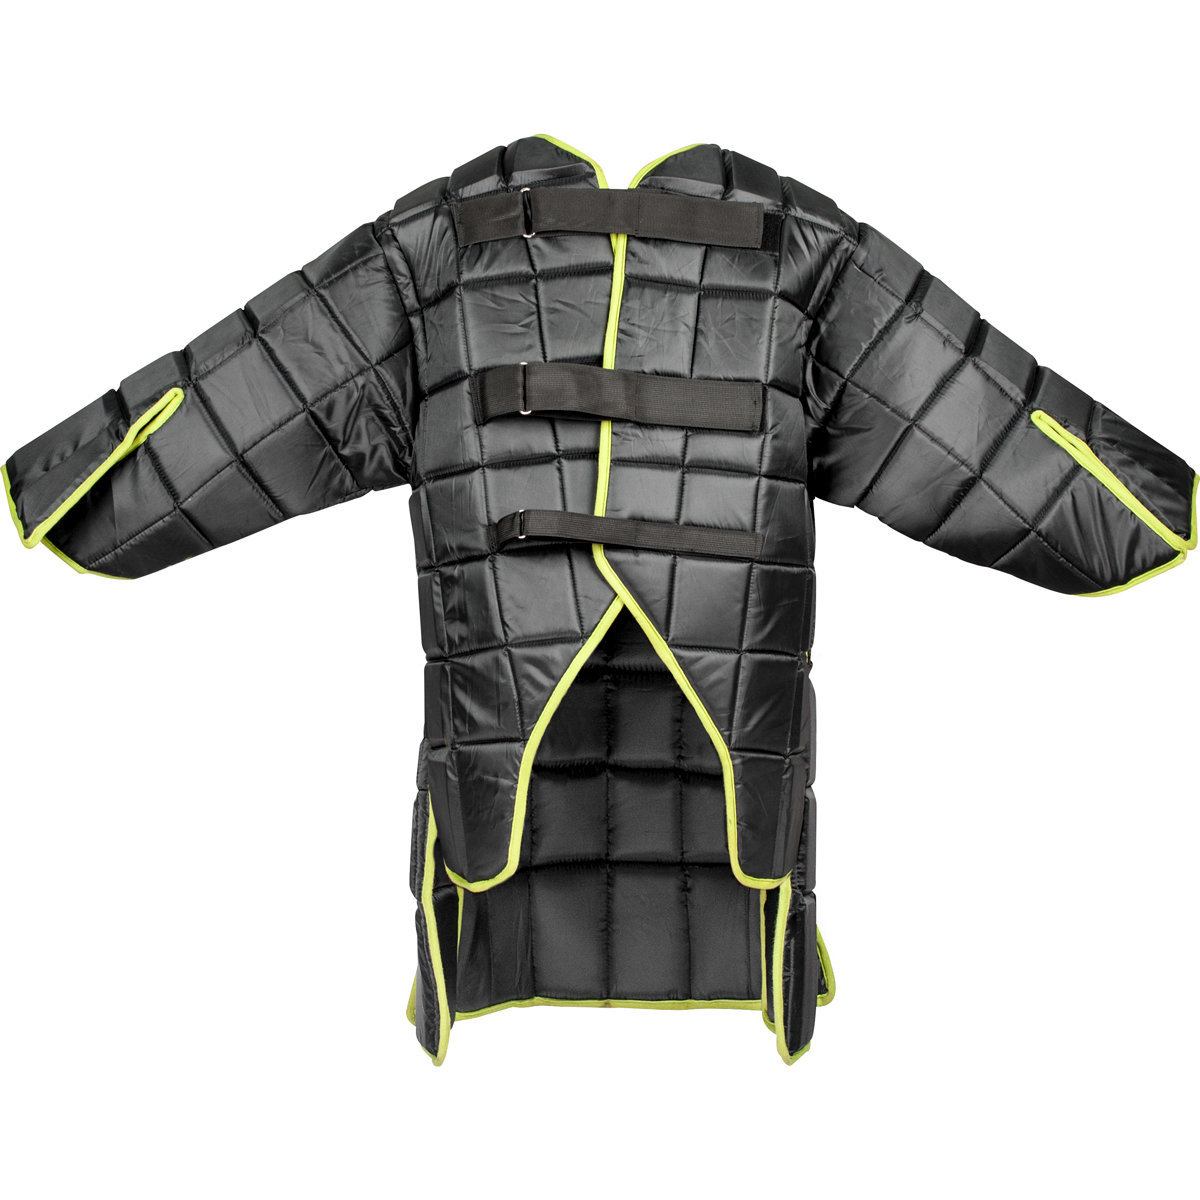 View larger image of Valken Overshield Zombie Chest Protector